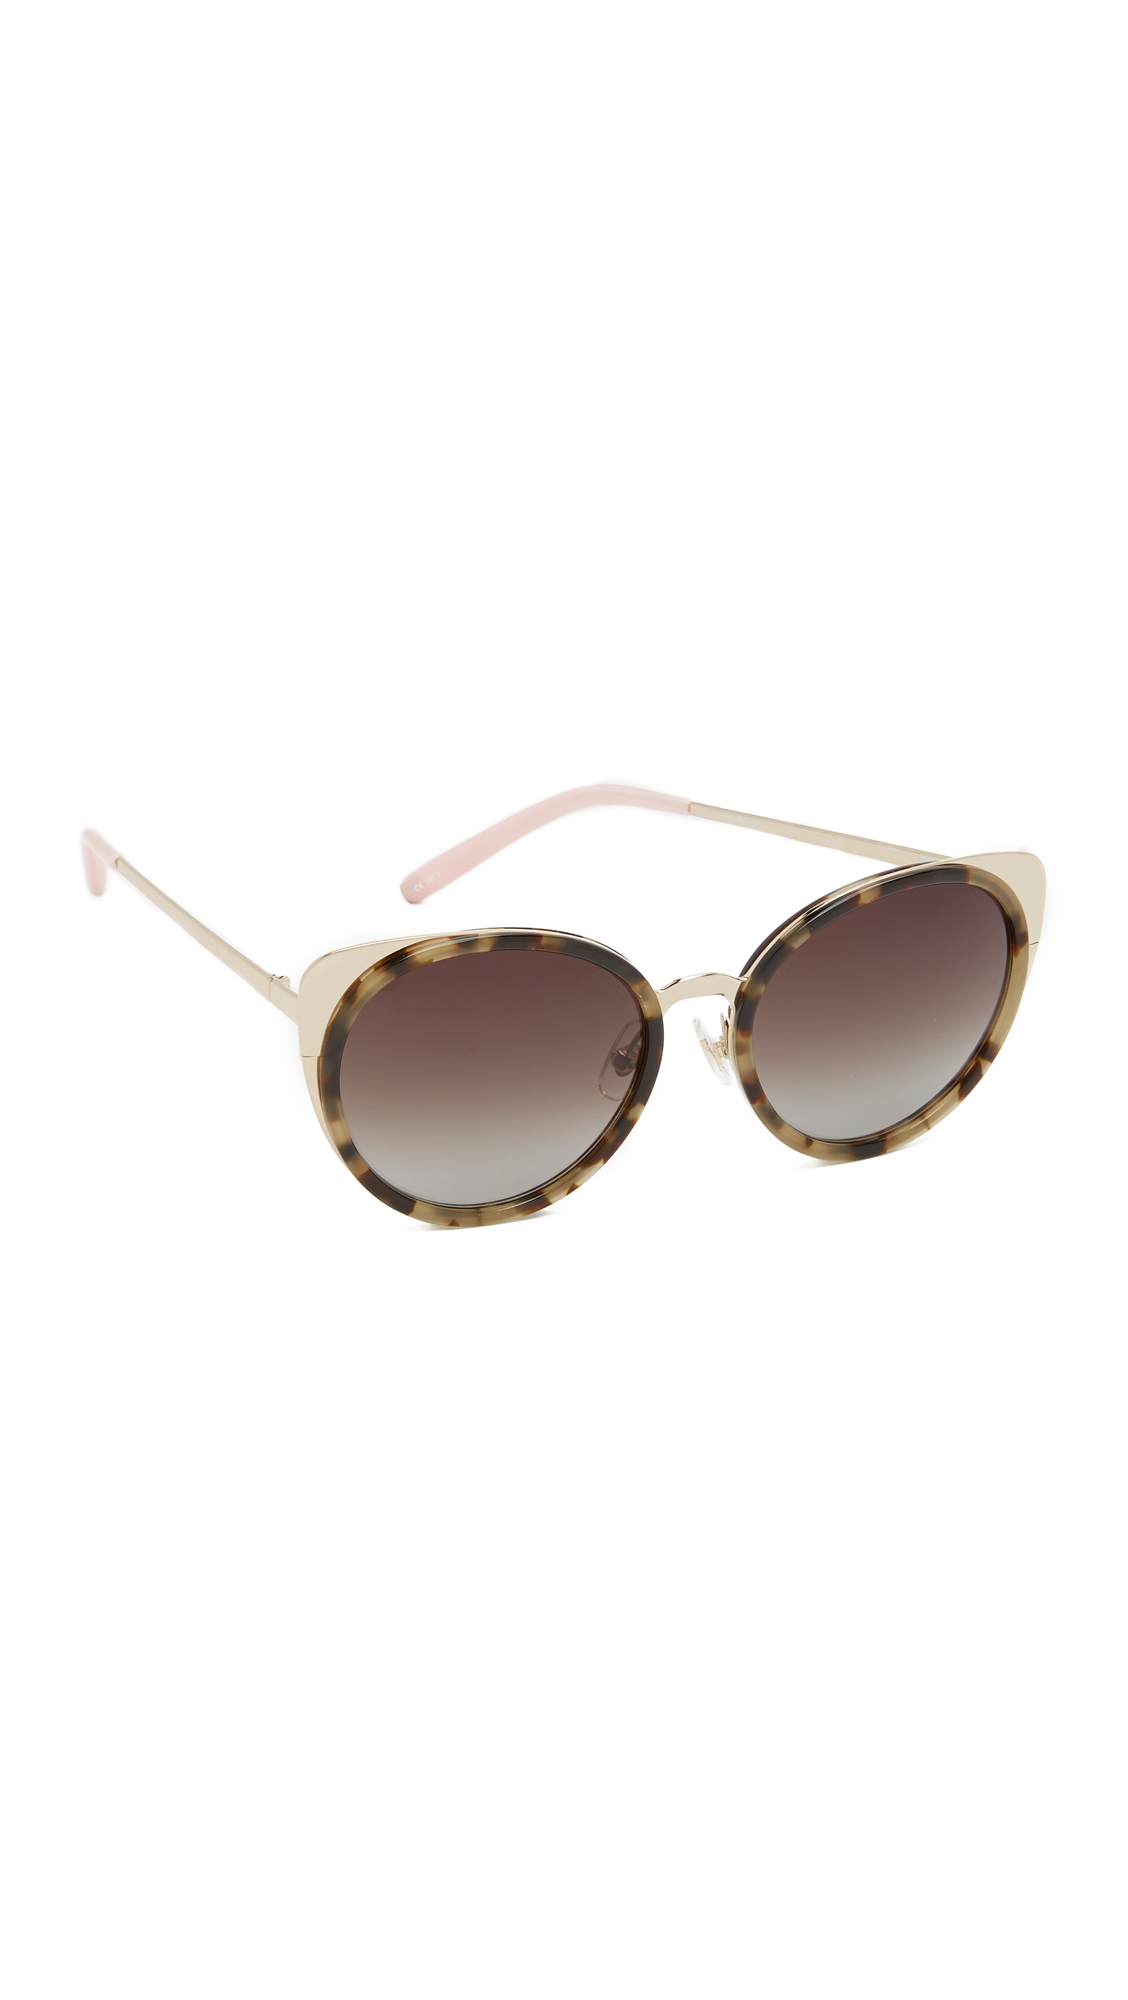 Matthew Williamson glitter cat eye sunglasses Shop For Online Free Shipping 100% Authentic Discounts Cheap Online Outlet Big Sale zneagF